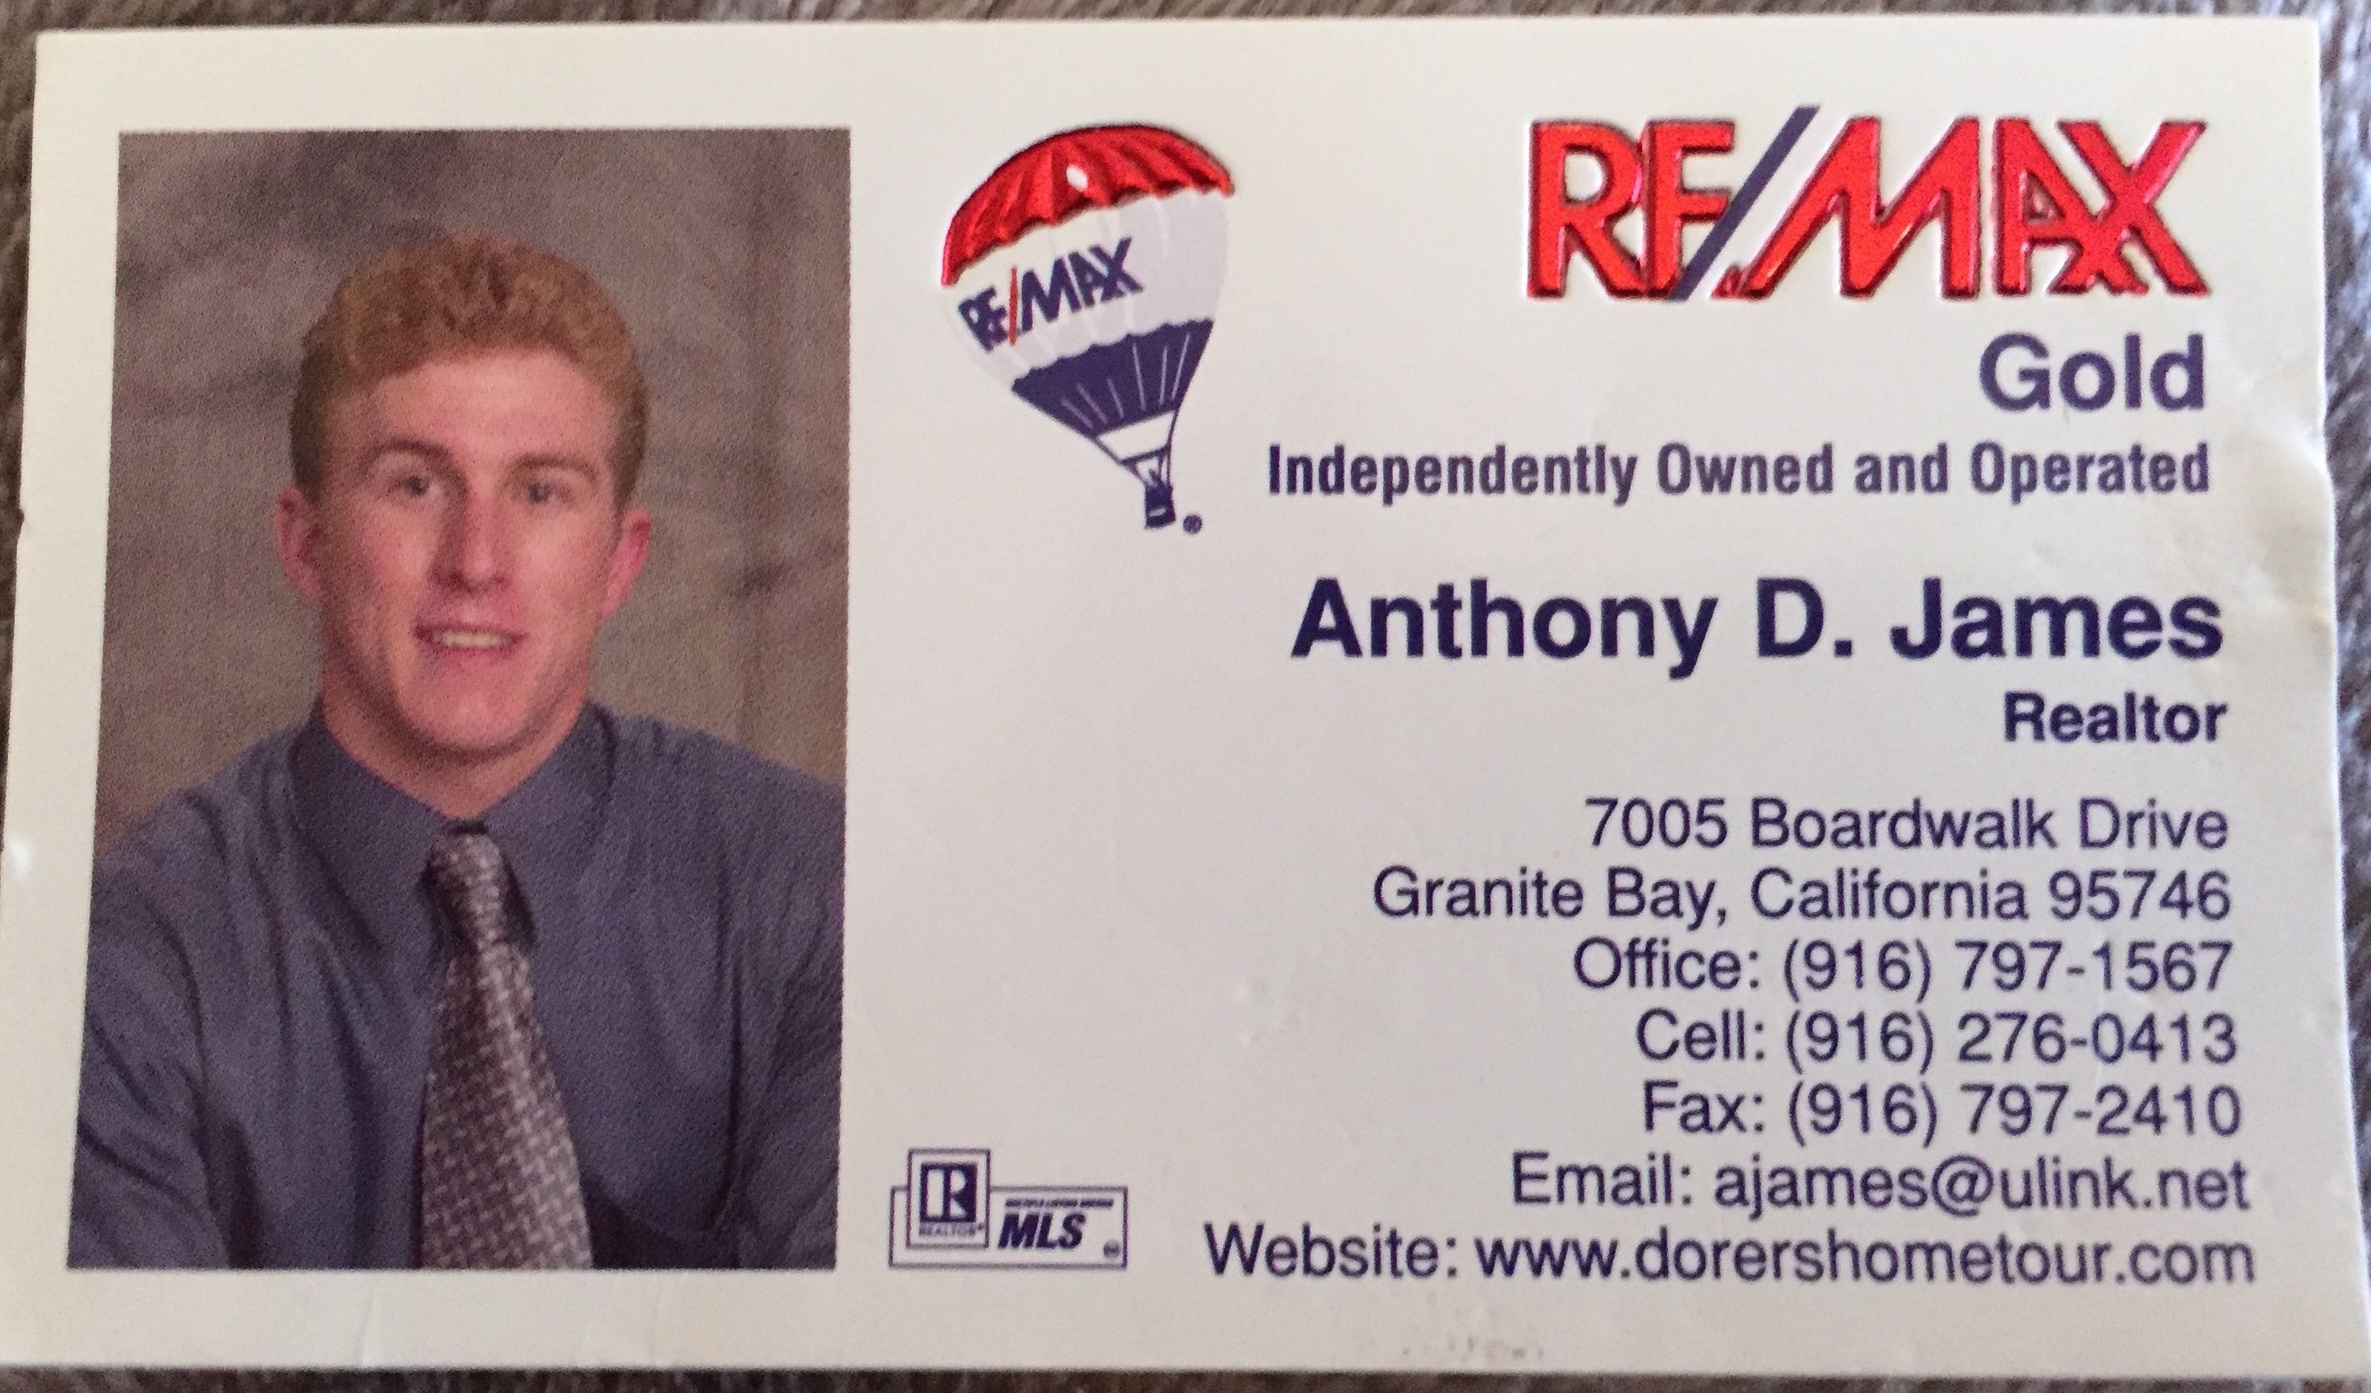 Anthony James' first business card from 2002, with RE/MAX Gold.